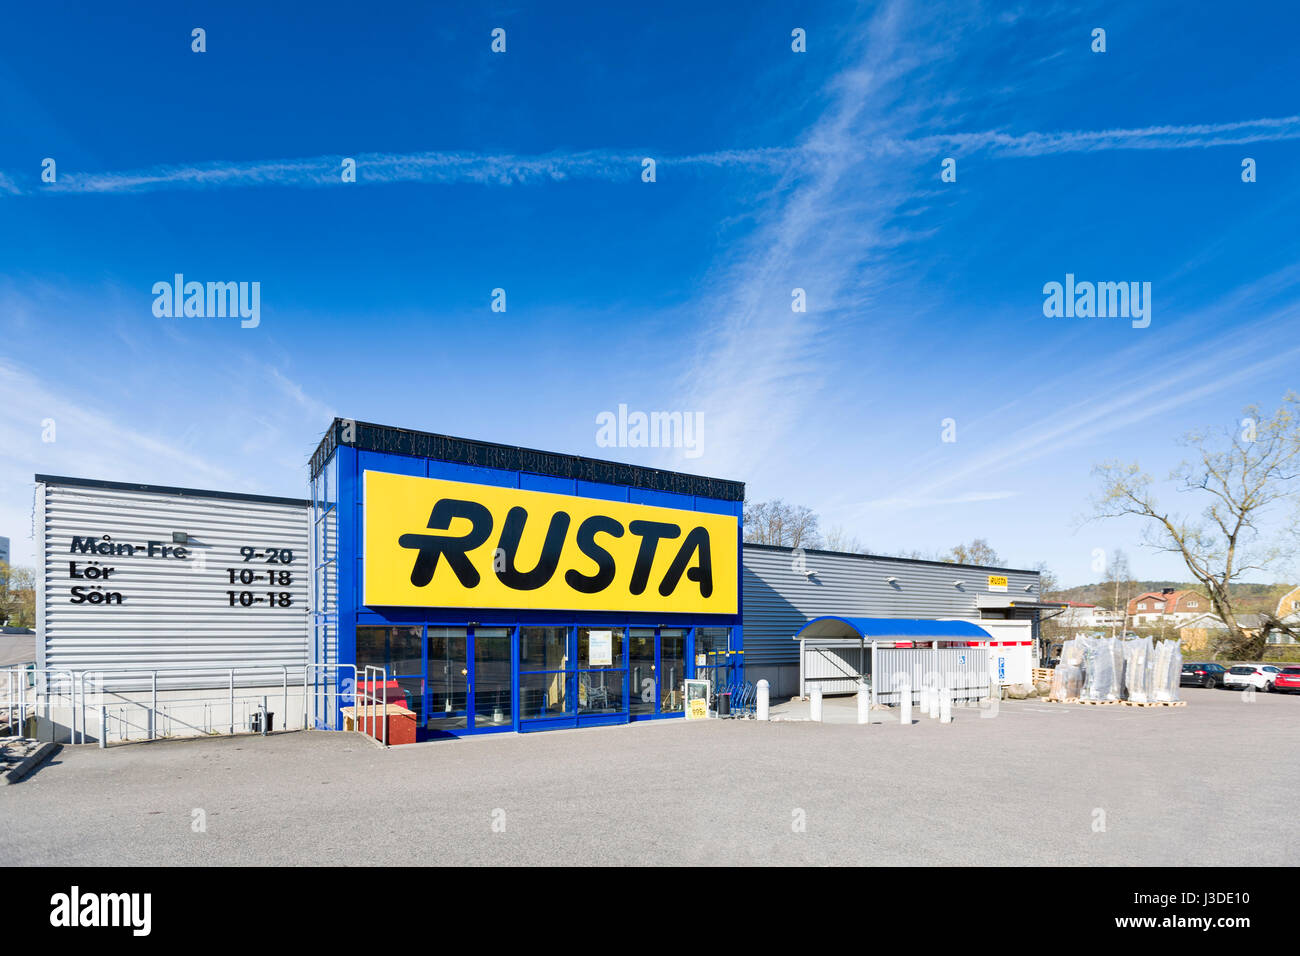 Rusta the Swedish chain of shops with DIY products, furniture, leisure goods and consumables  Model Release: No. - Stock Image